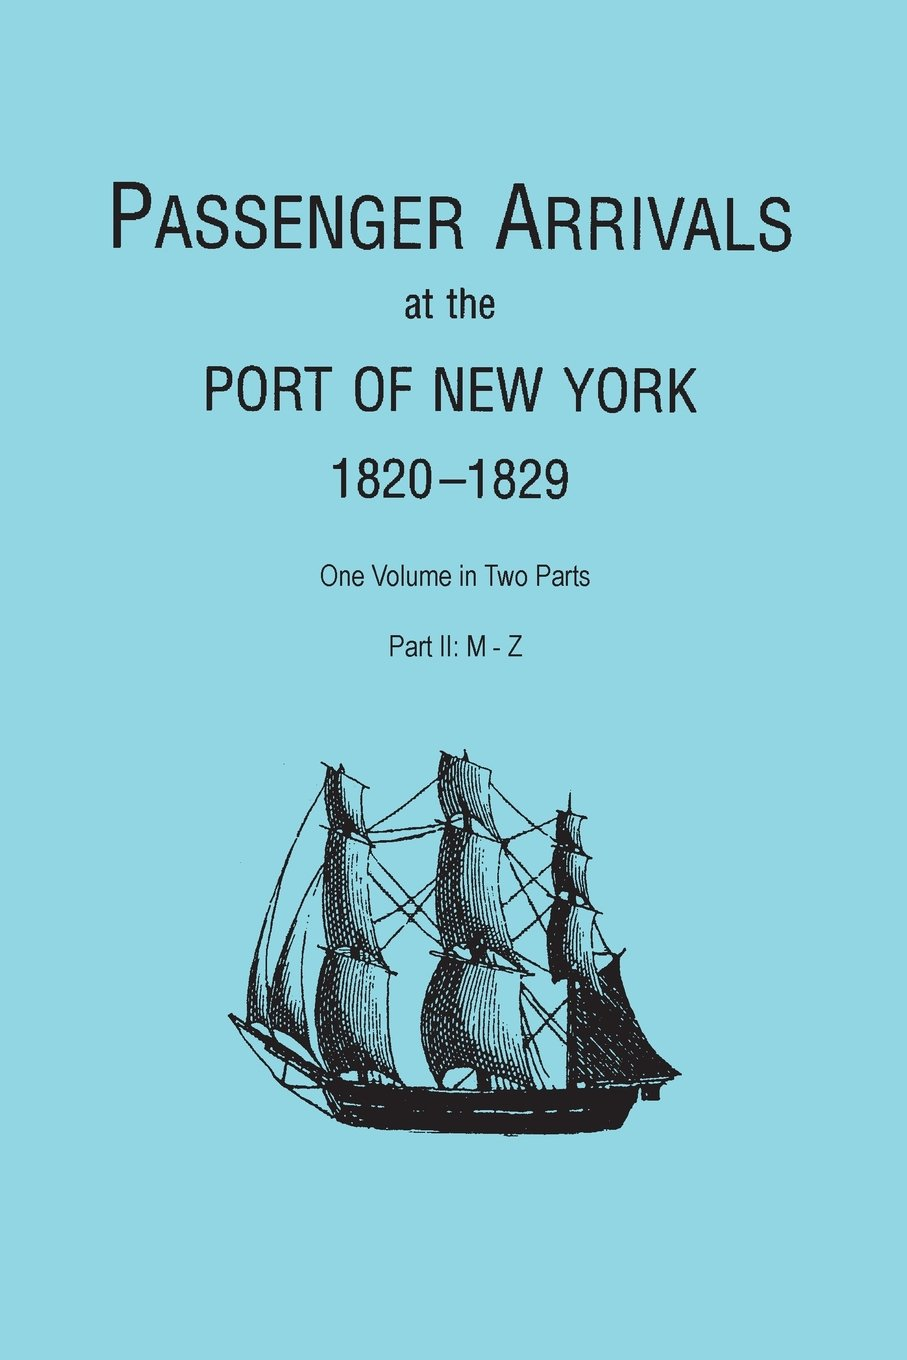 Download Passenger Arrivals at the Port of New York, 1820-1829, from Customs Passenger Lists. One Volume in Two Parts. Part II: M-Z pdf epub